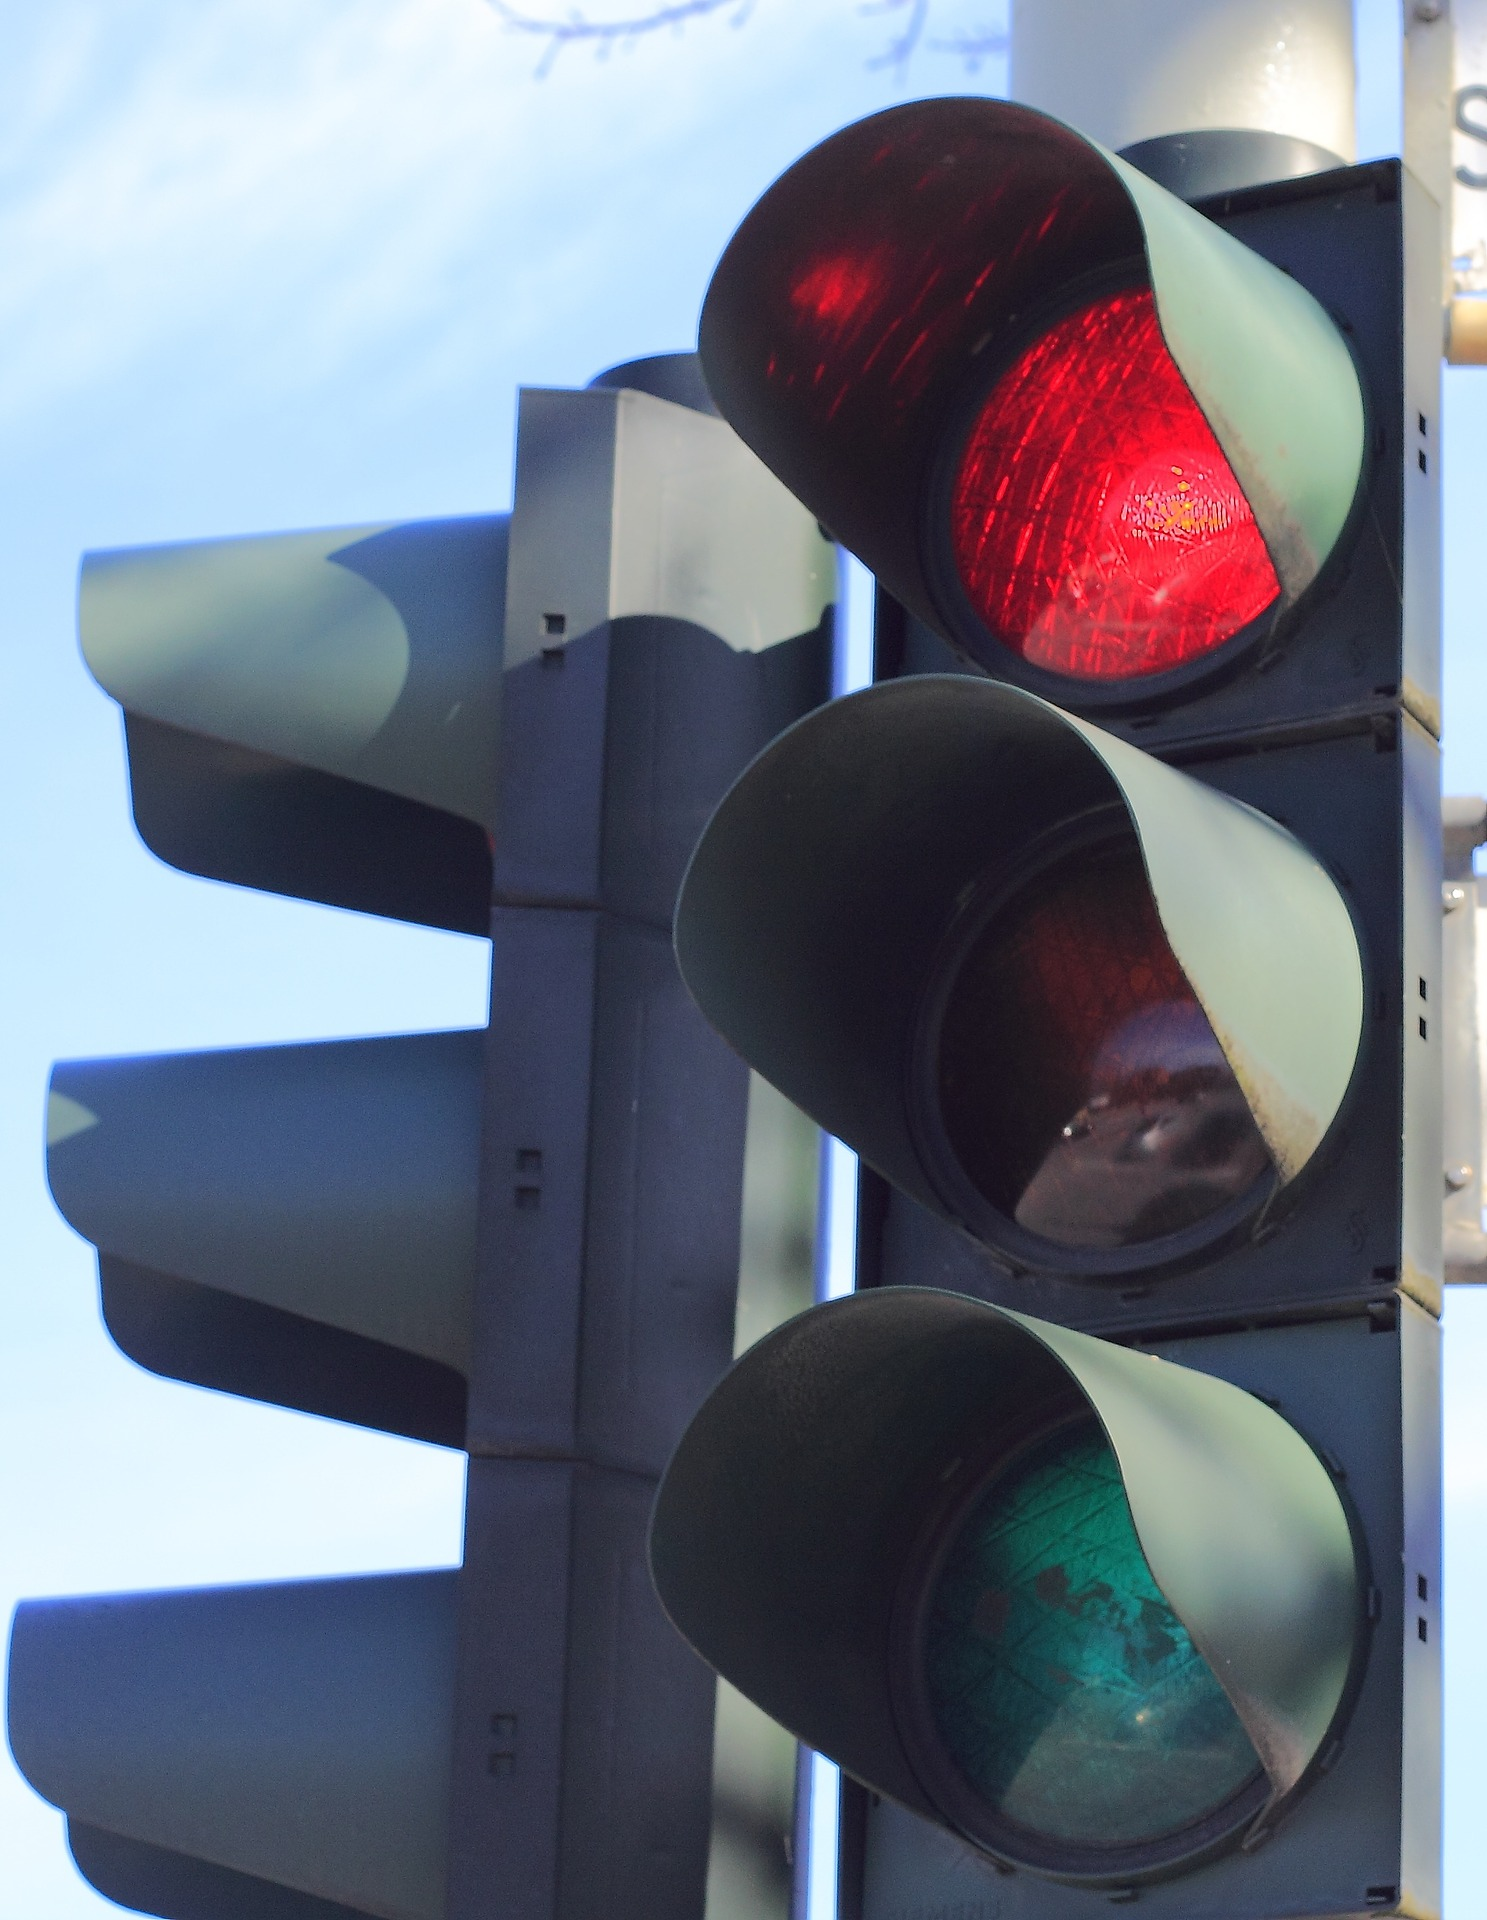 traffic-lights-686041_1920